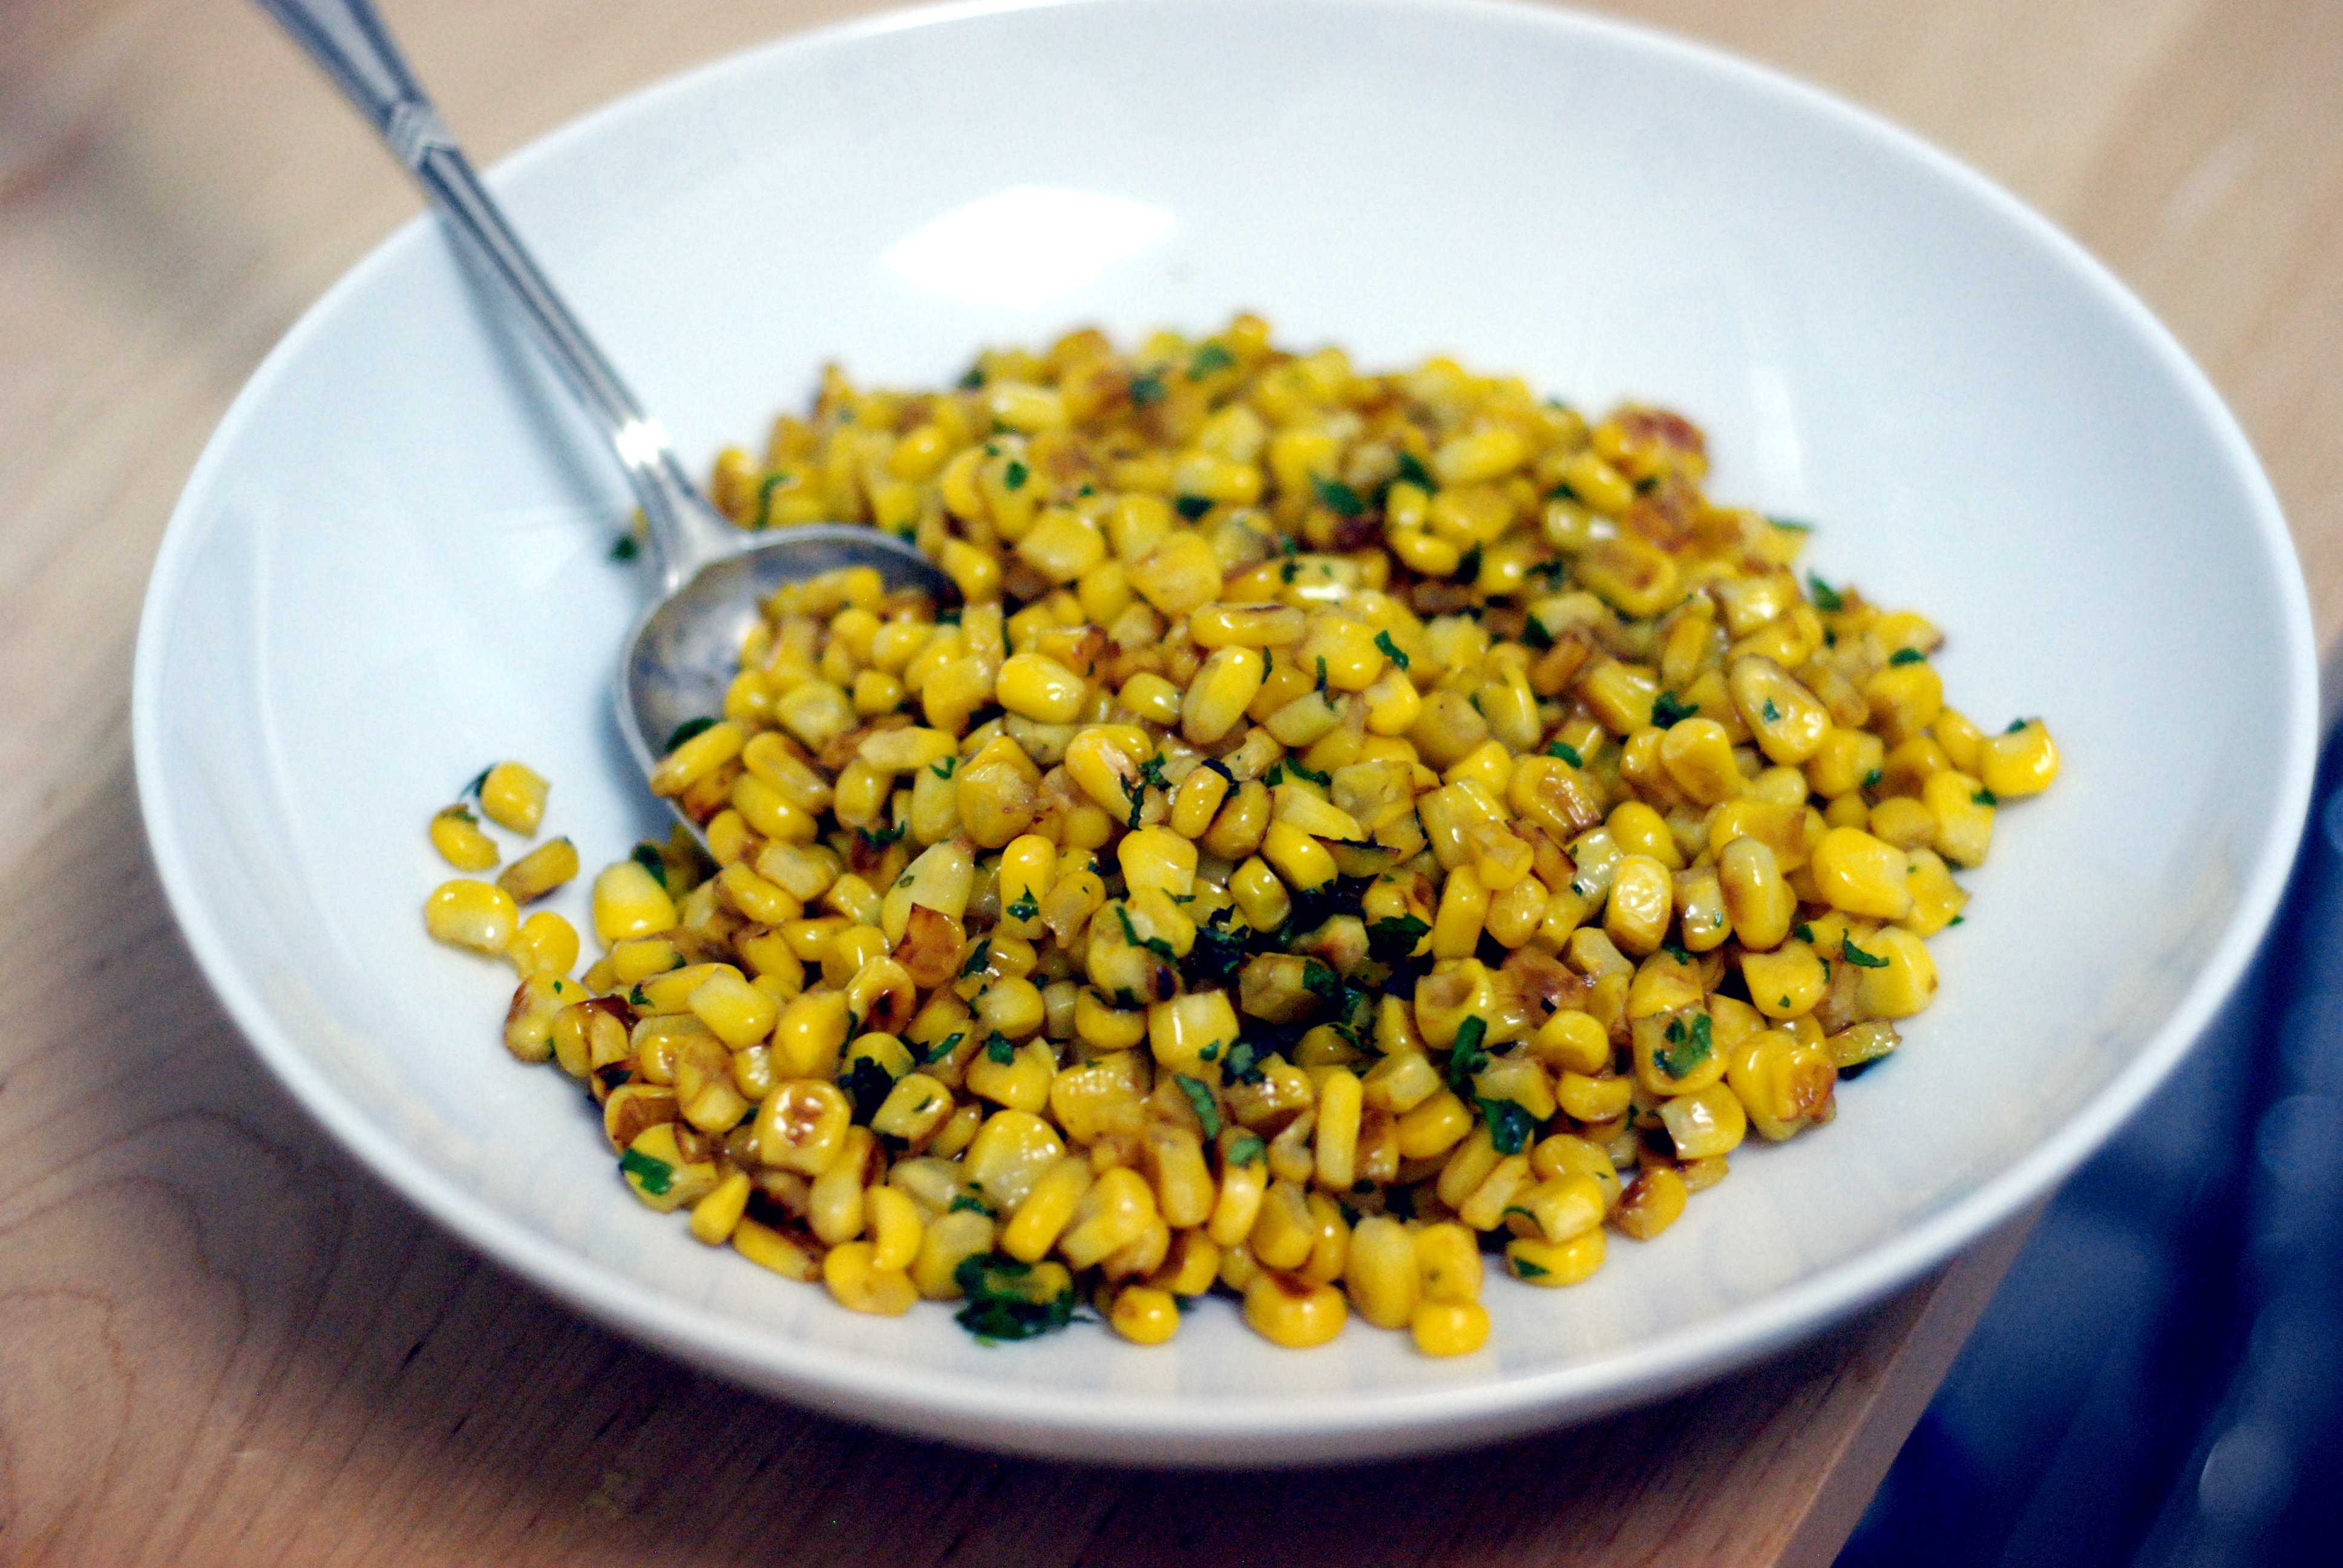 Julia Moskin's Caramelized Corn with Fresh Mint - The